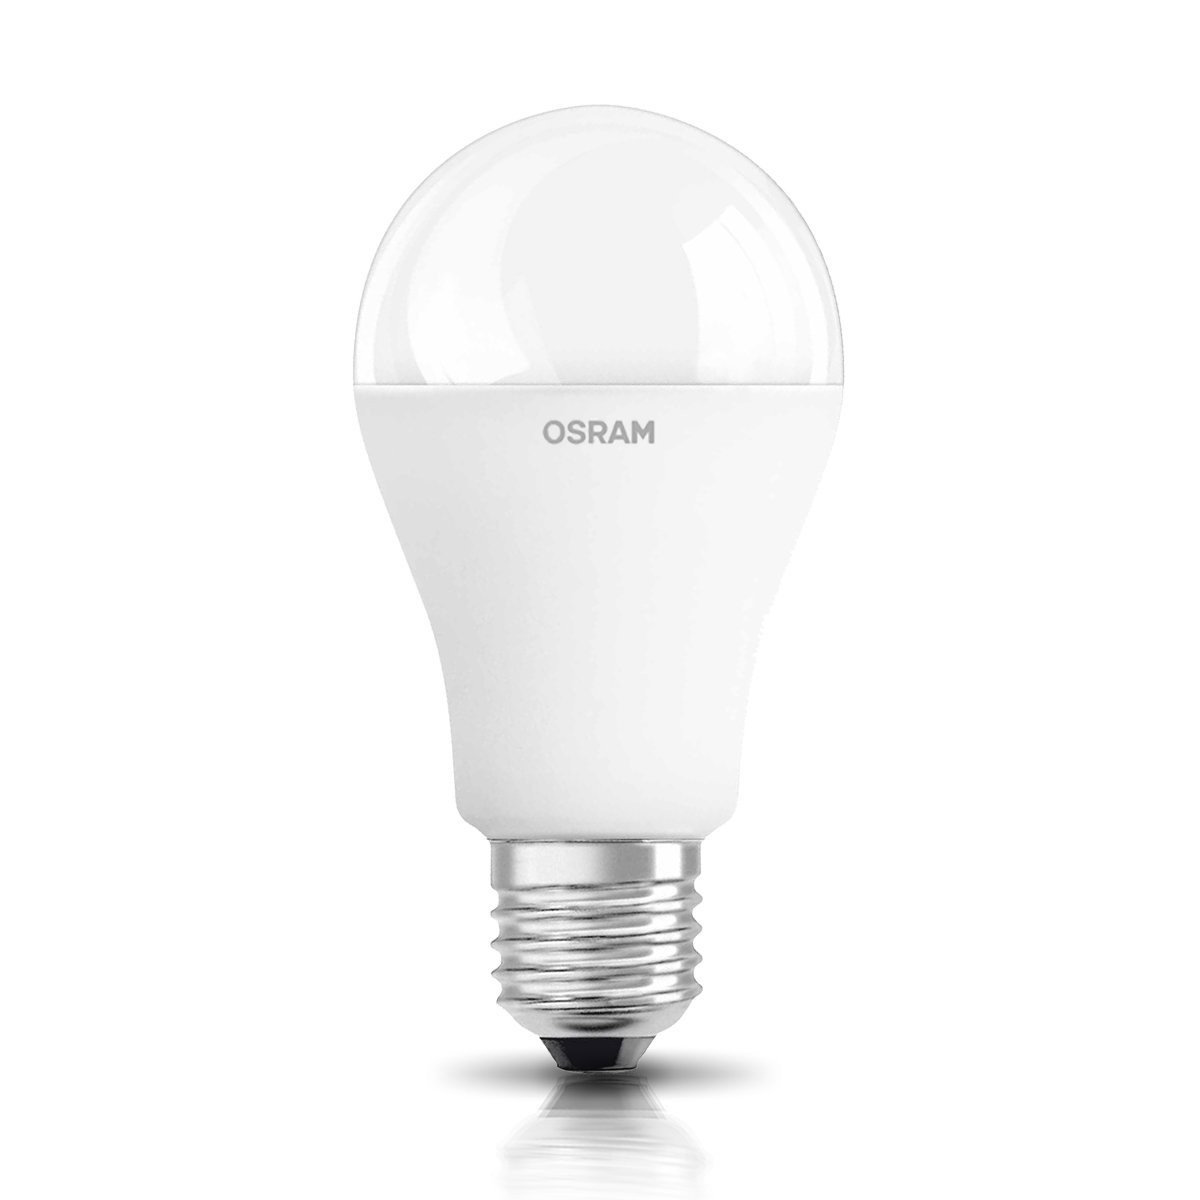 osram 13w e27 led lamp neutraal wit vervangt 100w. Black Bedroom Furniture Sets. Home Design Ideas